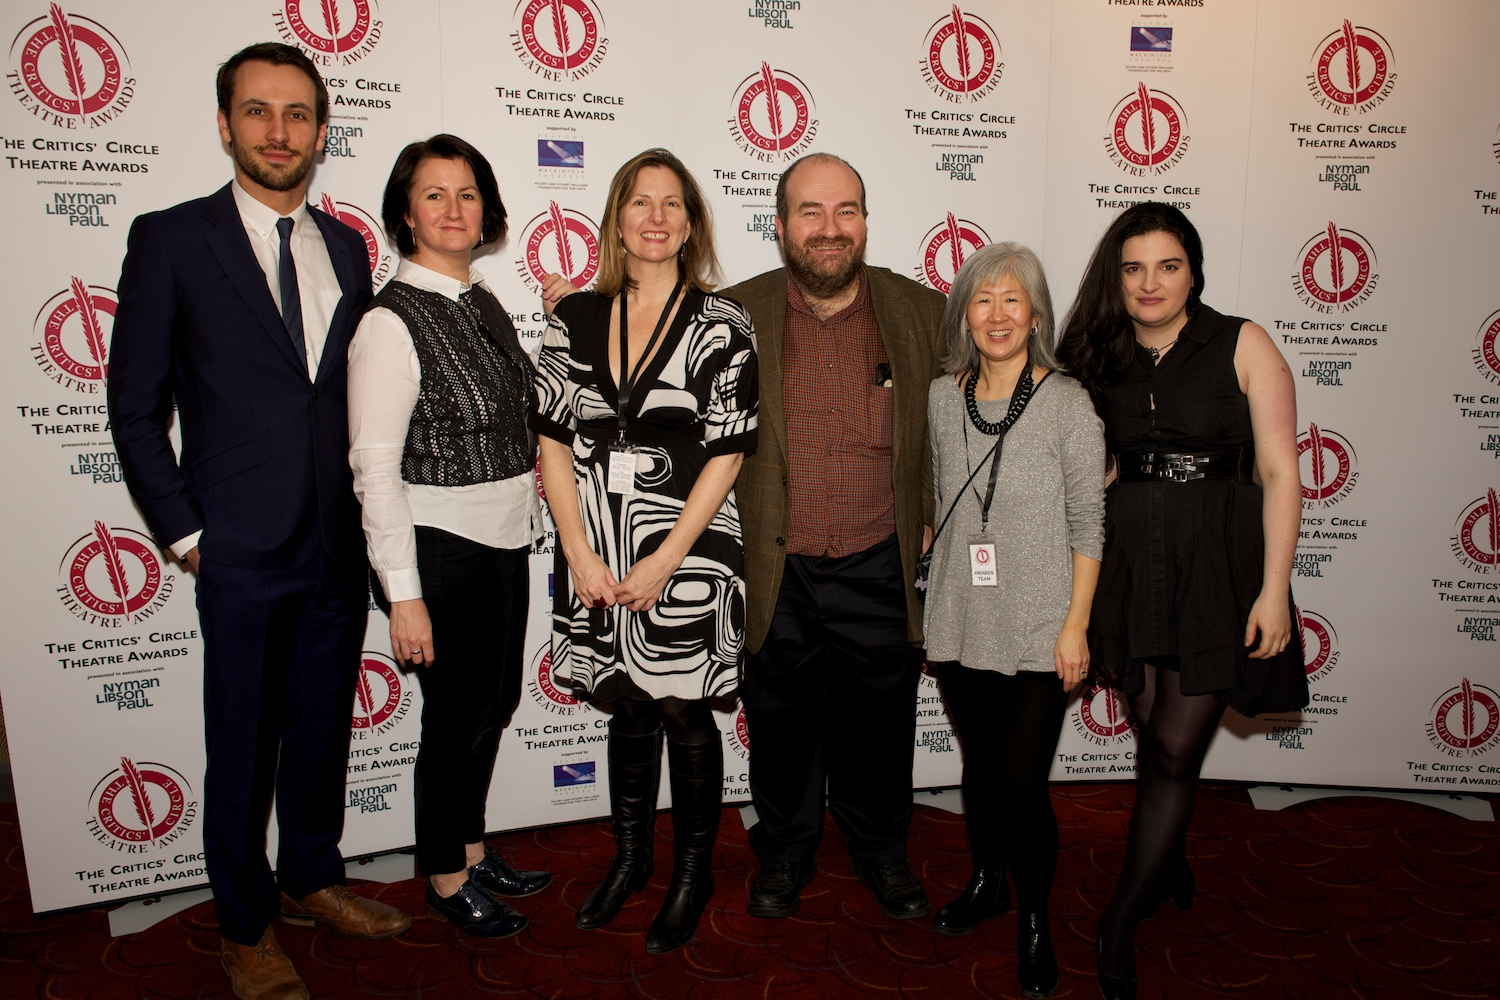 Me and Mark Shenton in the middle with some of our amazing Awards volunteers: James Lawrence, Claire Ackling, Tina Foote and critic Kate Maltby